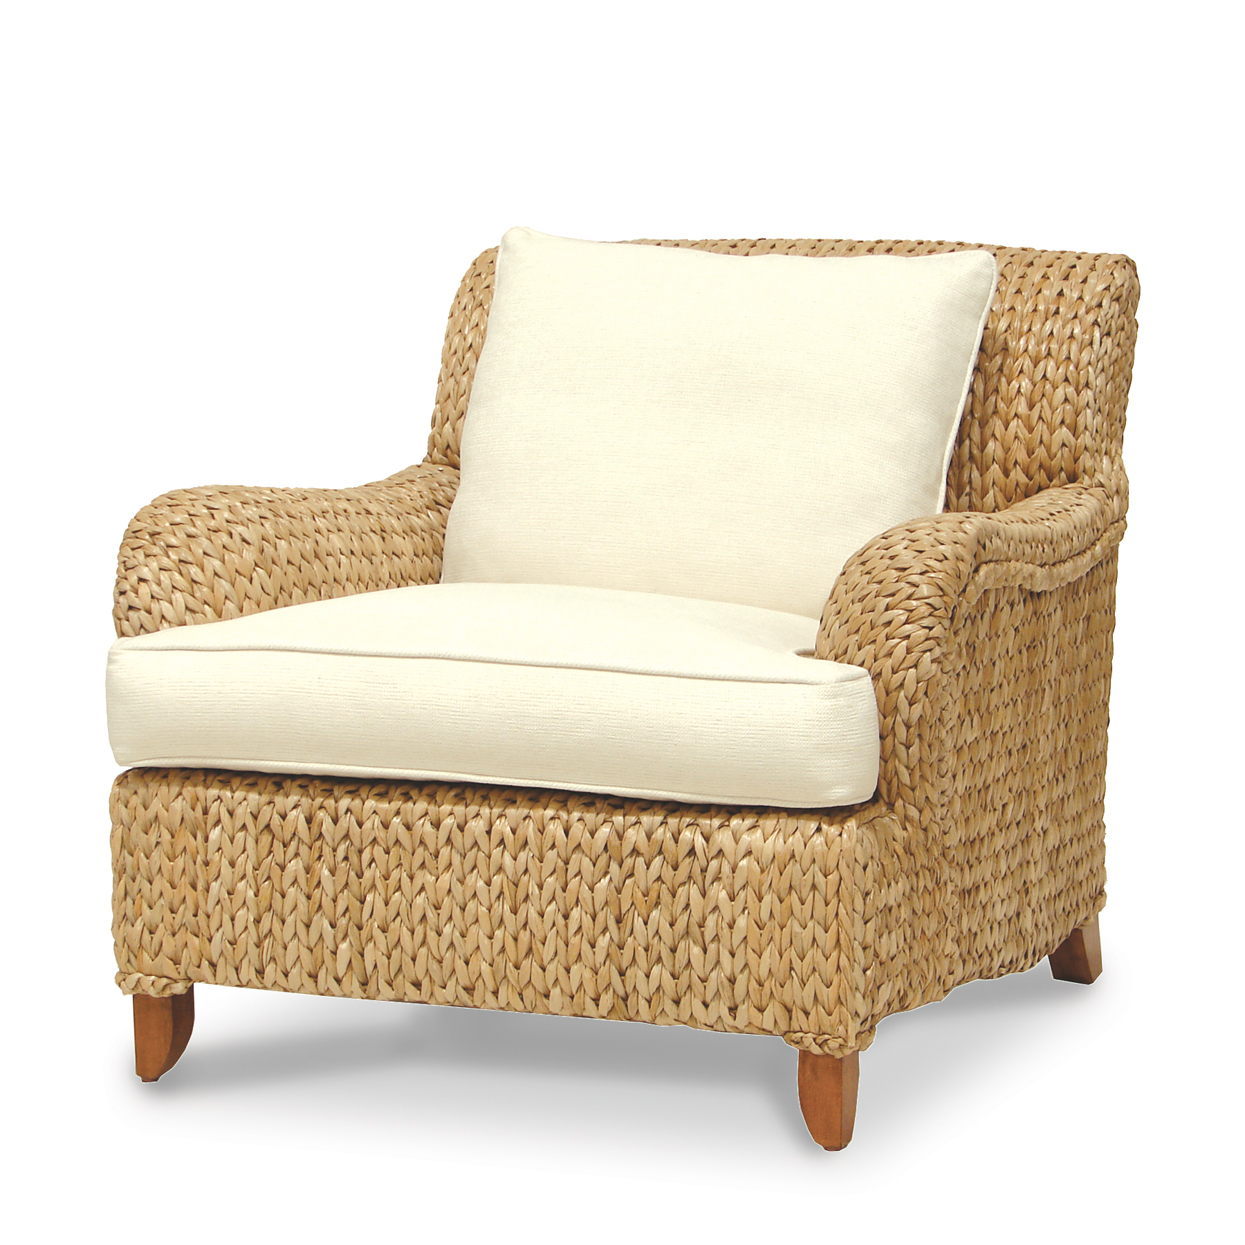 Sweater Weave Seagrass Lounge Chair